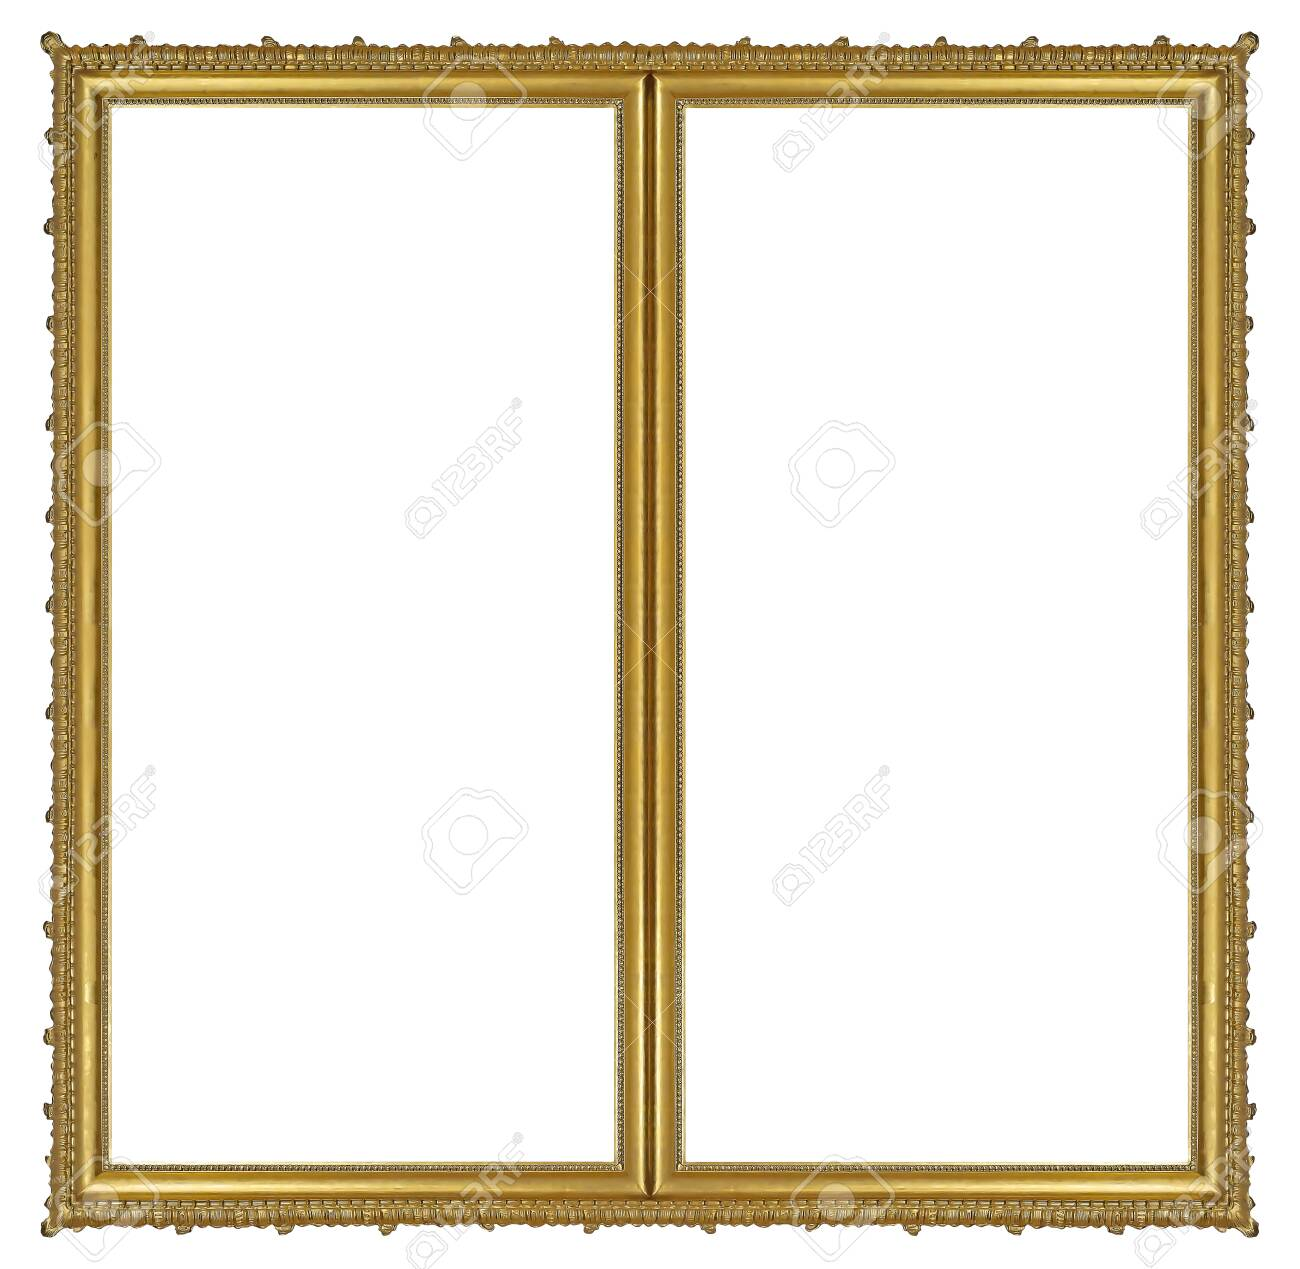 Double golden frame (diptych) for paintings, mirrors or photos isolated on white background. - 154869863